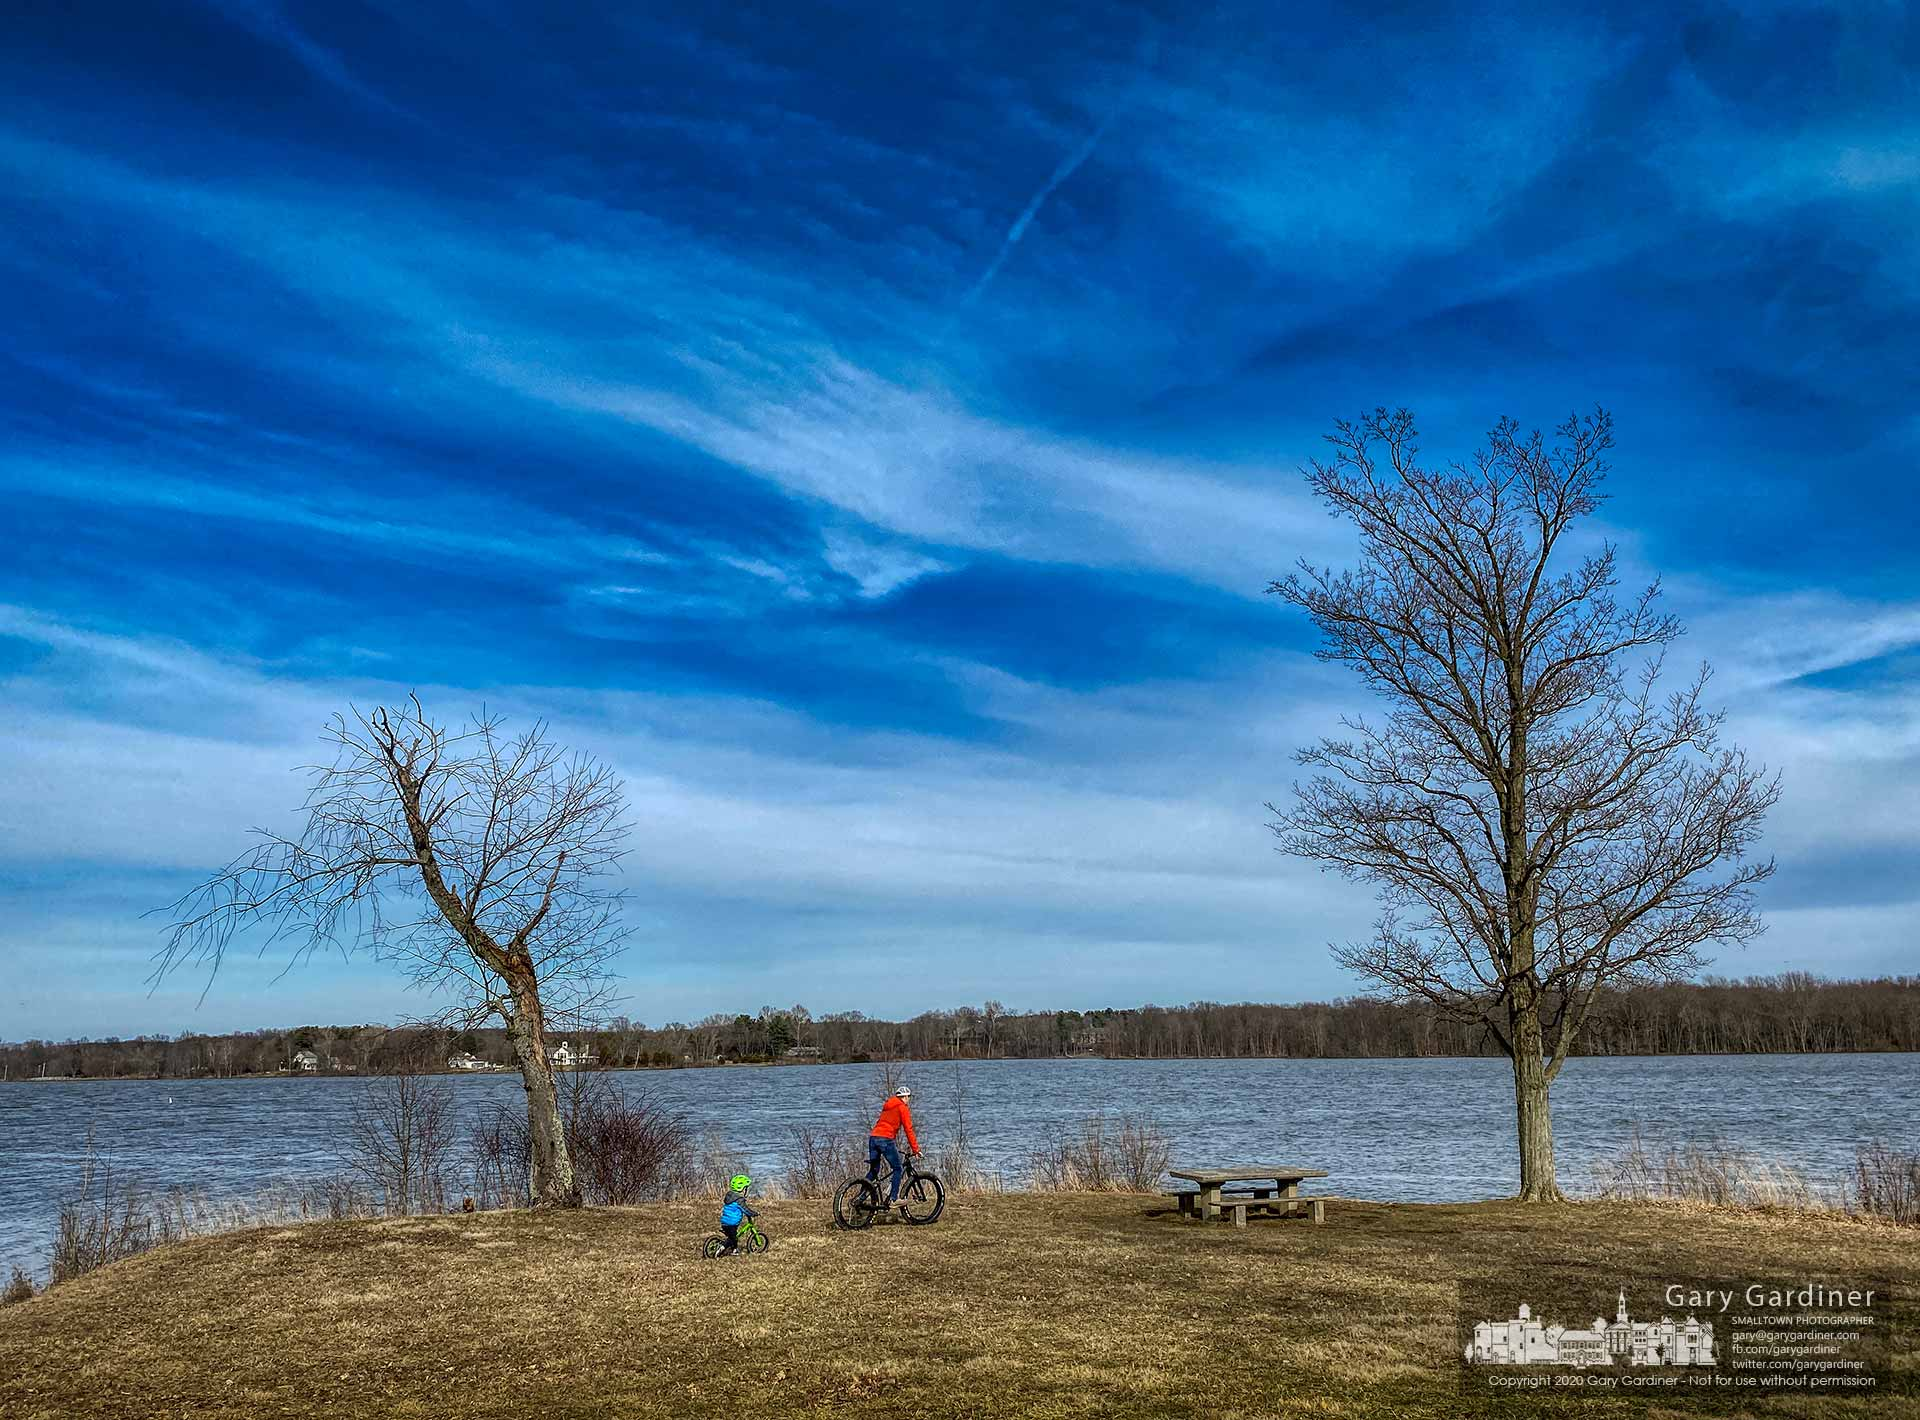 A father and son ride their bikes along the shoreline of Hoover Reservoir at Red Bank Park on the first day of March. My Final Photo for March 1, 2020.